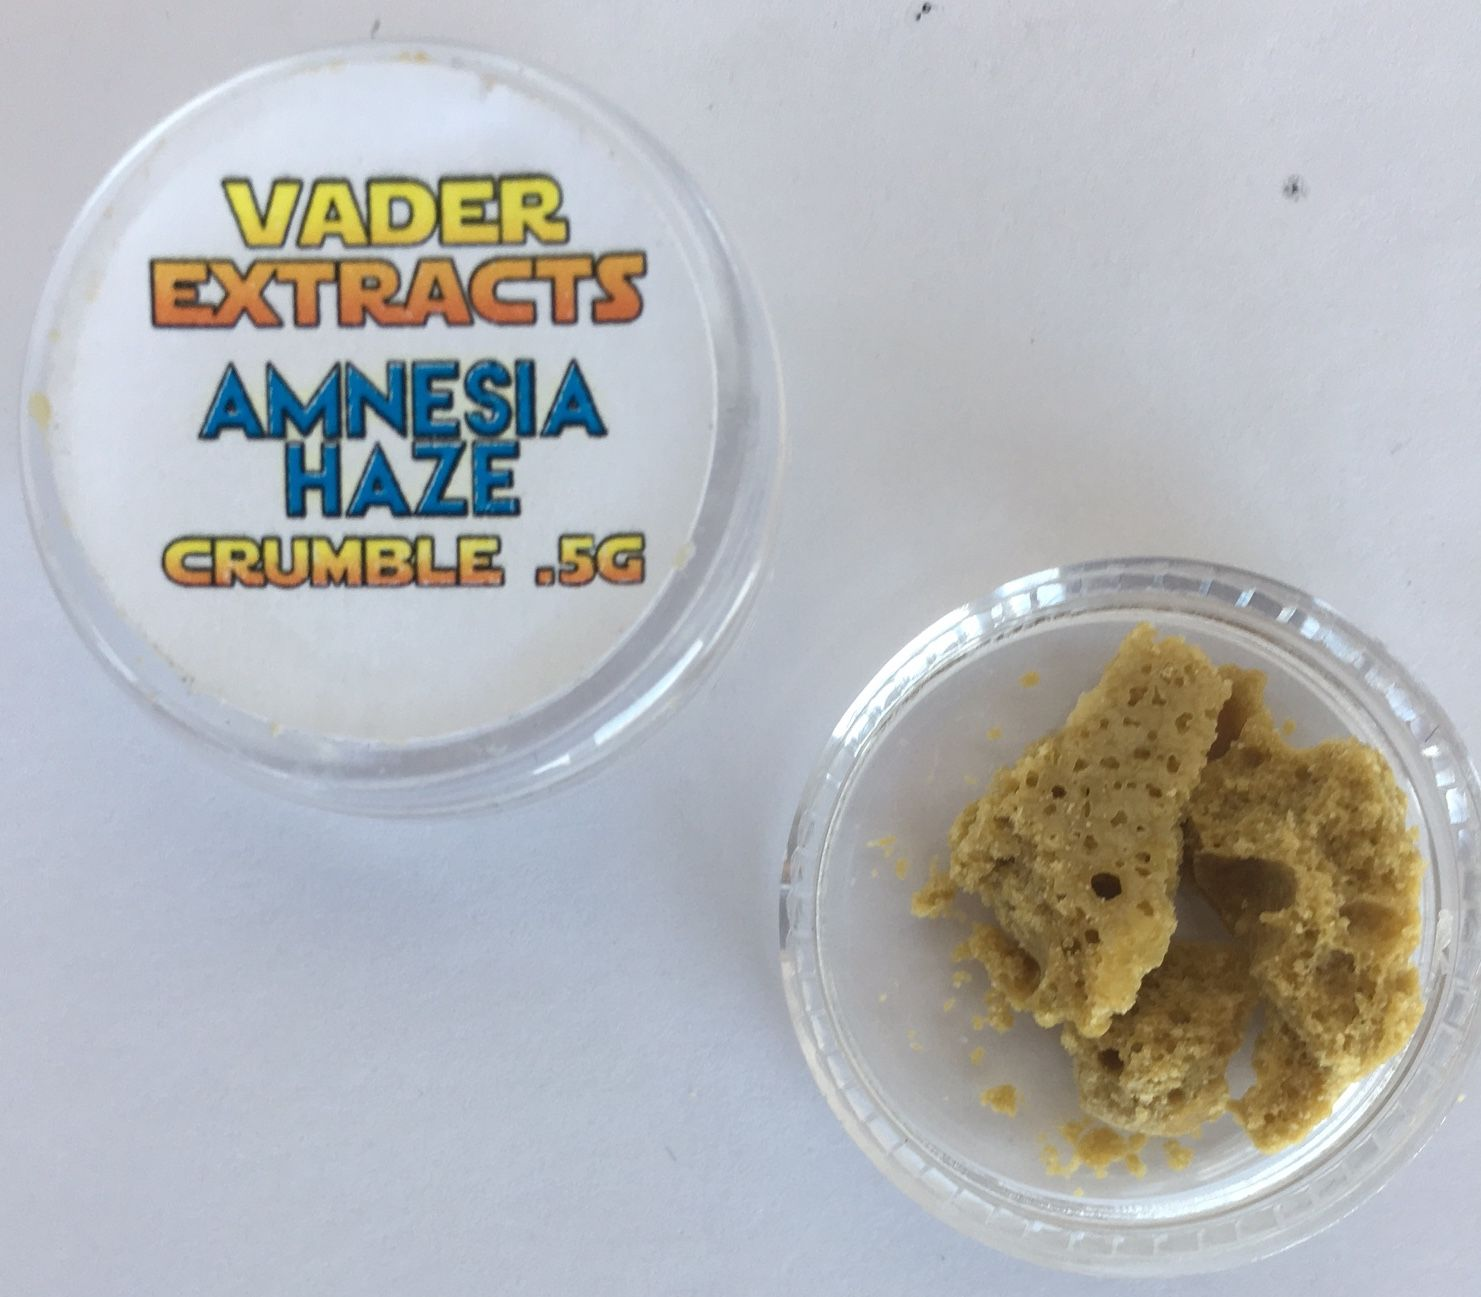 Vader Extracts - Amnesia Haze Crumble